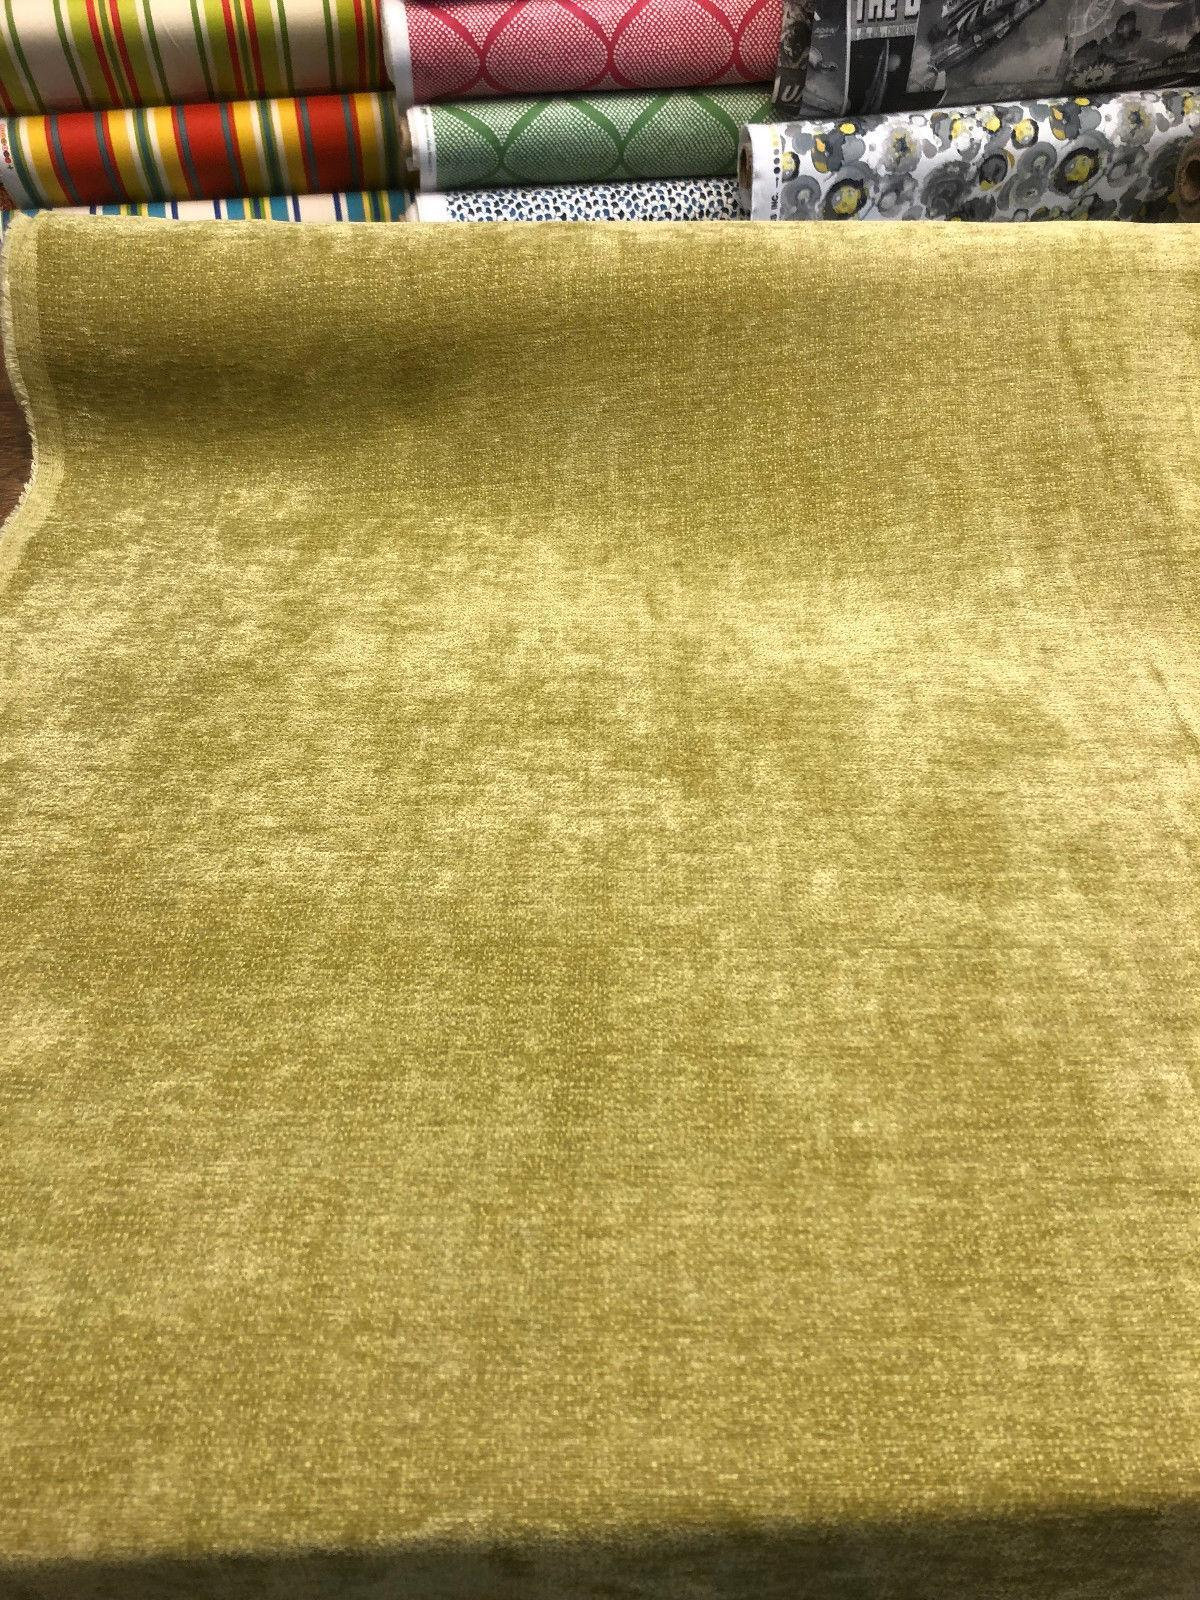 Durable Upholstery Fabric For Sofa Roxy Kiwi Green Soft Chenille Upholstery Fabric By The Yard Sofa